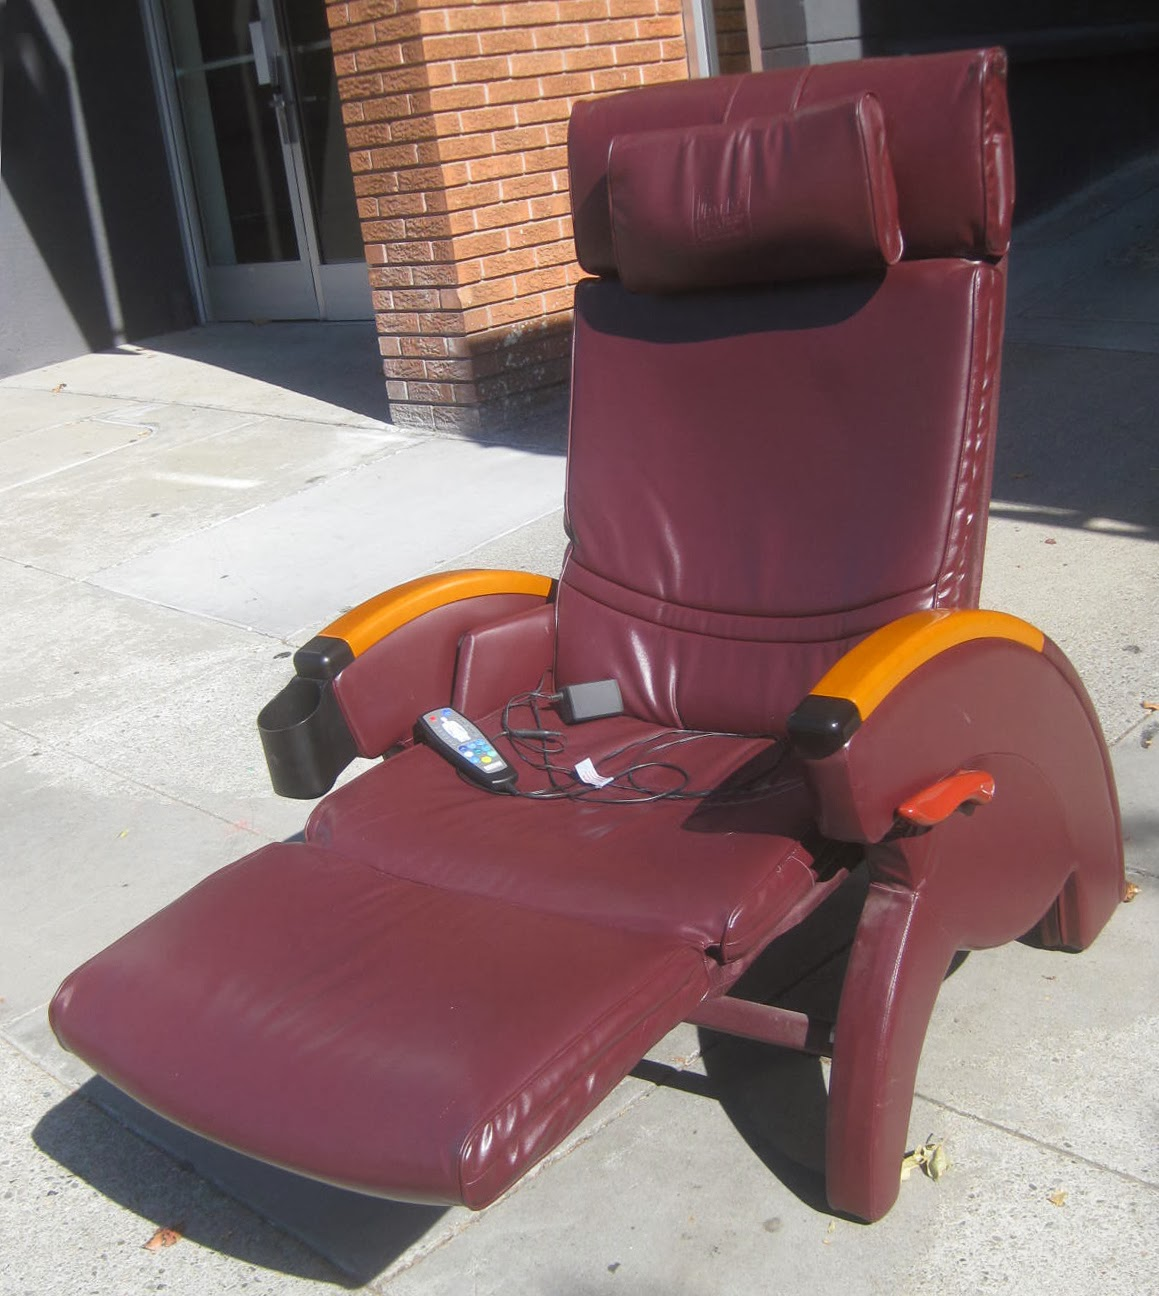 anti gravity reclining chairs lazy boy fridge chair uhuru furniture and collectibles sold tony little